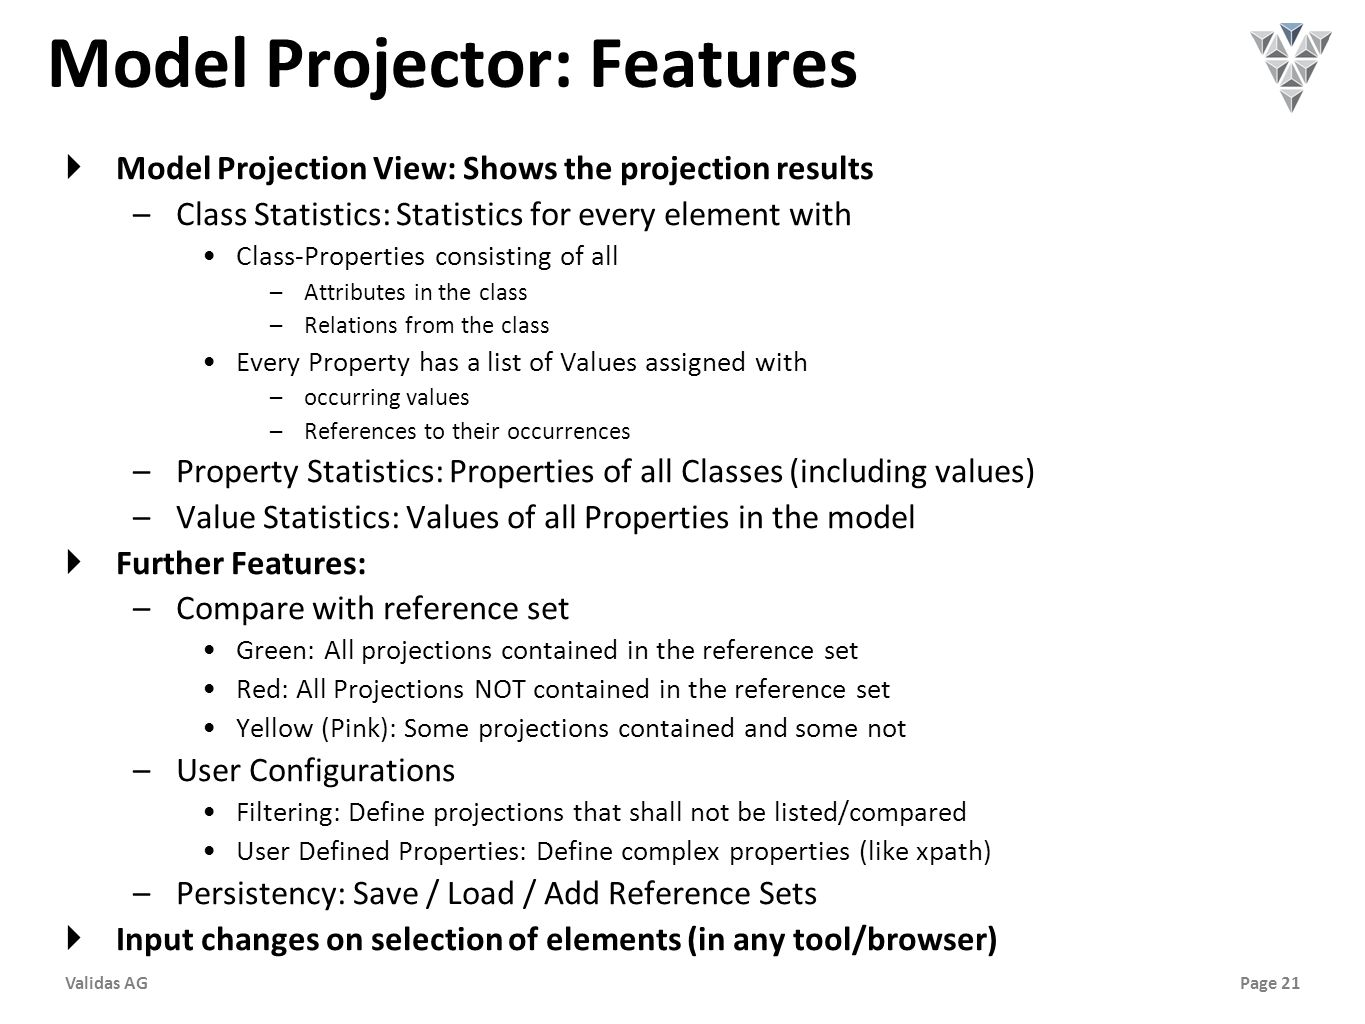 Page 21Validas AG Model Projector: Features  Model Projection View: Shows the projection results –Class Statistics: Statistics for every element with Class-Properties consisting of all –Attributes in the class –Relations from the class Every Property has a list of Values assigned with –occurring values –References to their occurrences –Property Statistics: Properties of all Classes (including values) –Value Statistics: Values of all Properties in the model  Further Features: –Compare with reference set Green: All projections contained in the reference set Red: All Projections NOT contained in the reference set Yellow (Pink): Some projections contained and some not –User Configurations Filtering: Define projections that shall not be listed/compared User Defined Properties: Define complex properties (like xpath) –Persistency: Save / Load / Add Reference Sets  Input changes on selection of elements (in any tool/browser)